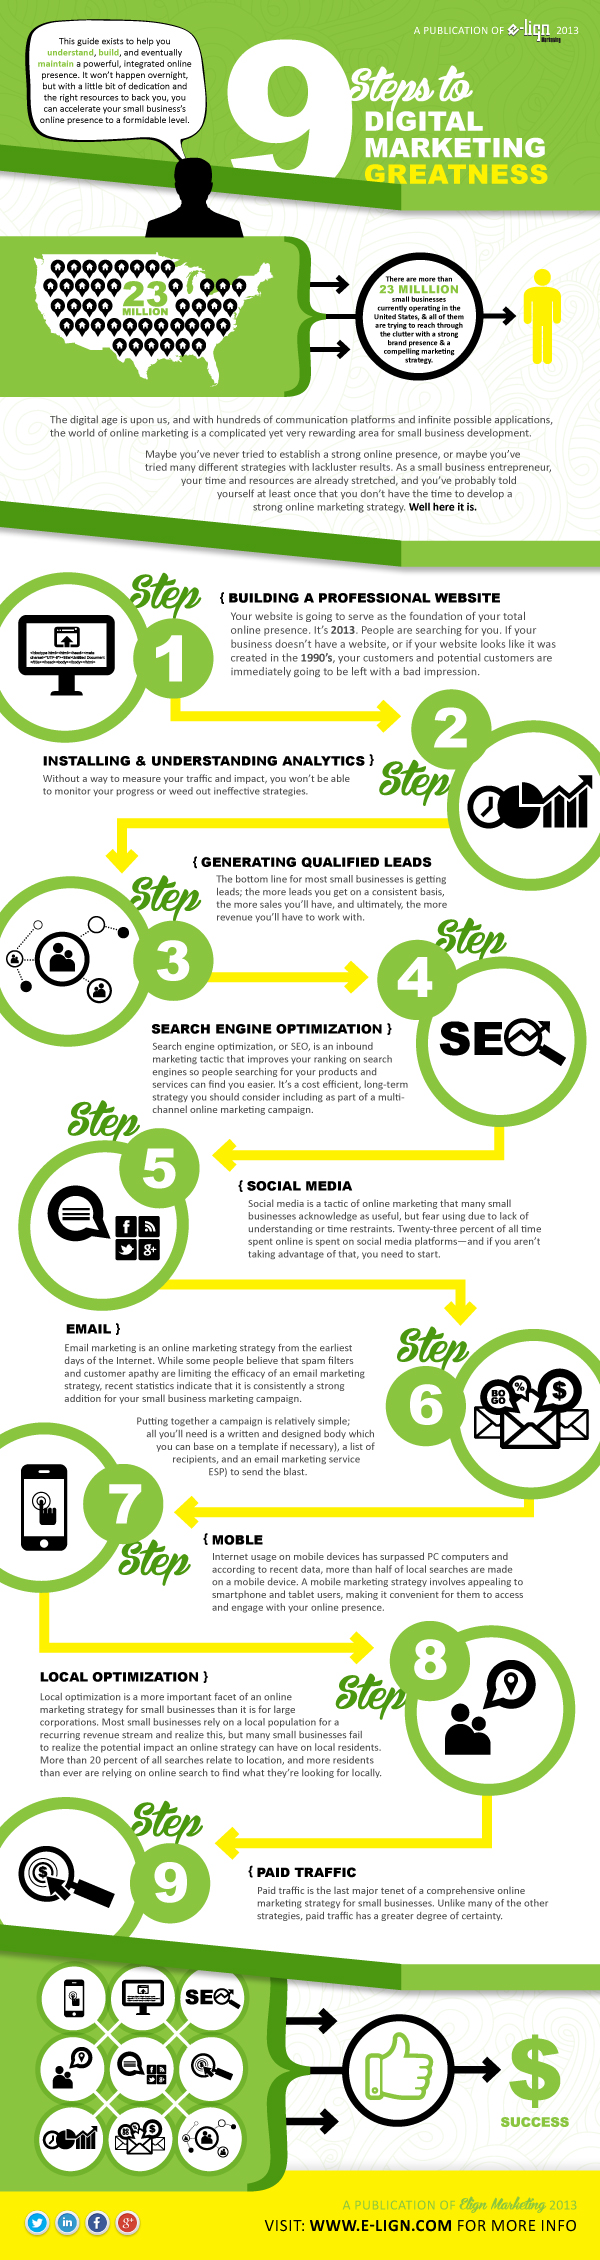 digital marketing steps